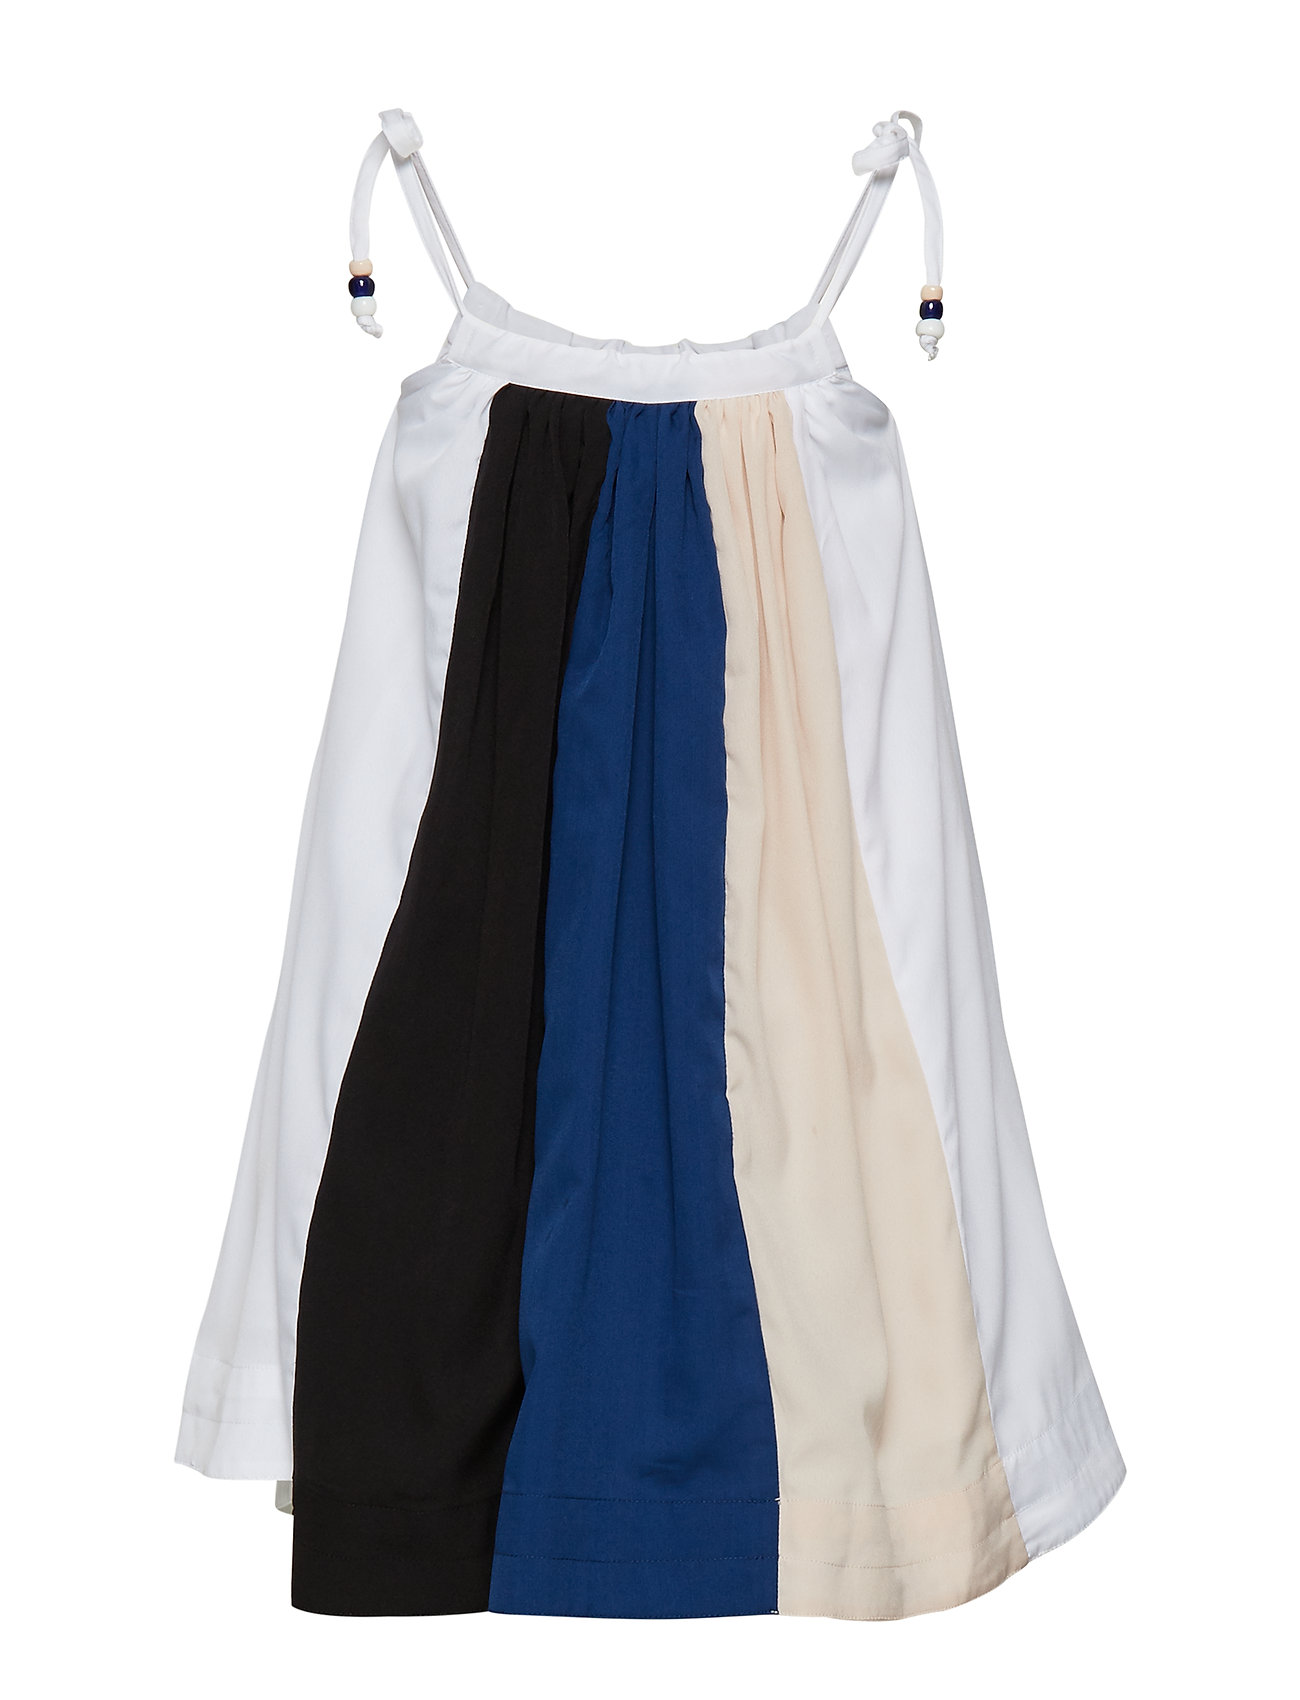 How to kiss a frog - CONI dress - dresses - black/powder/offwhite/blue